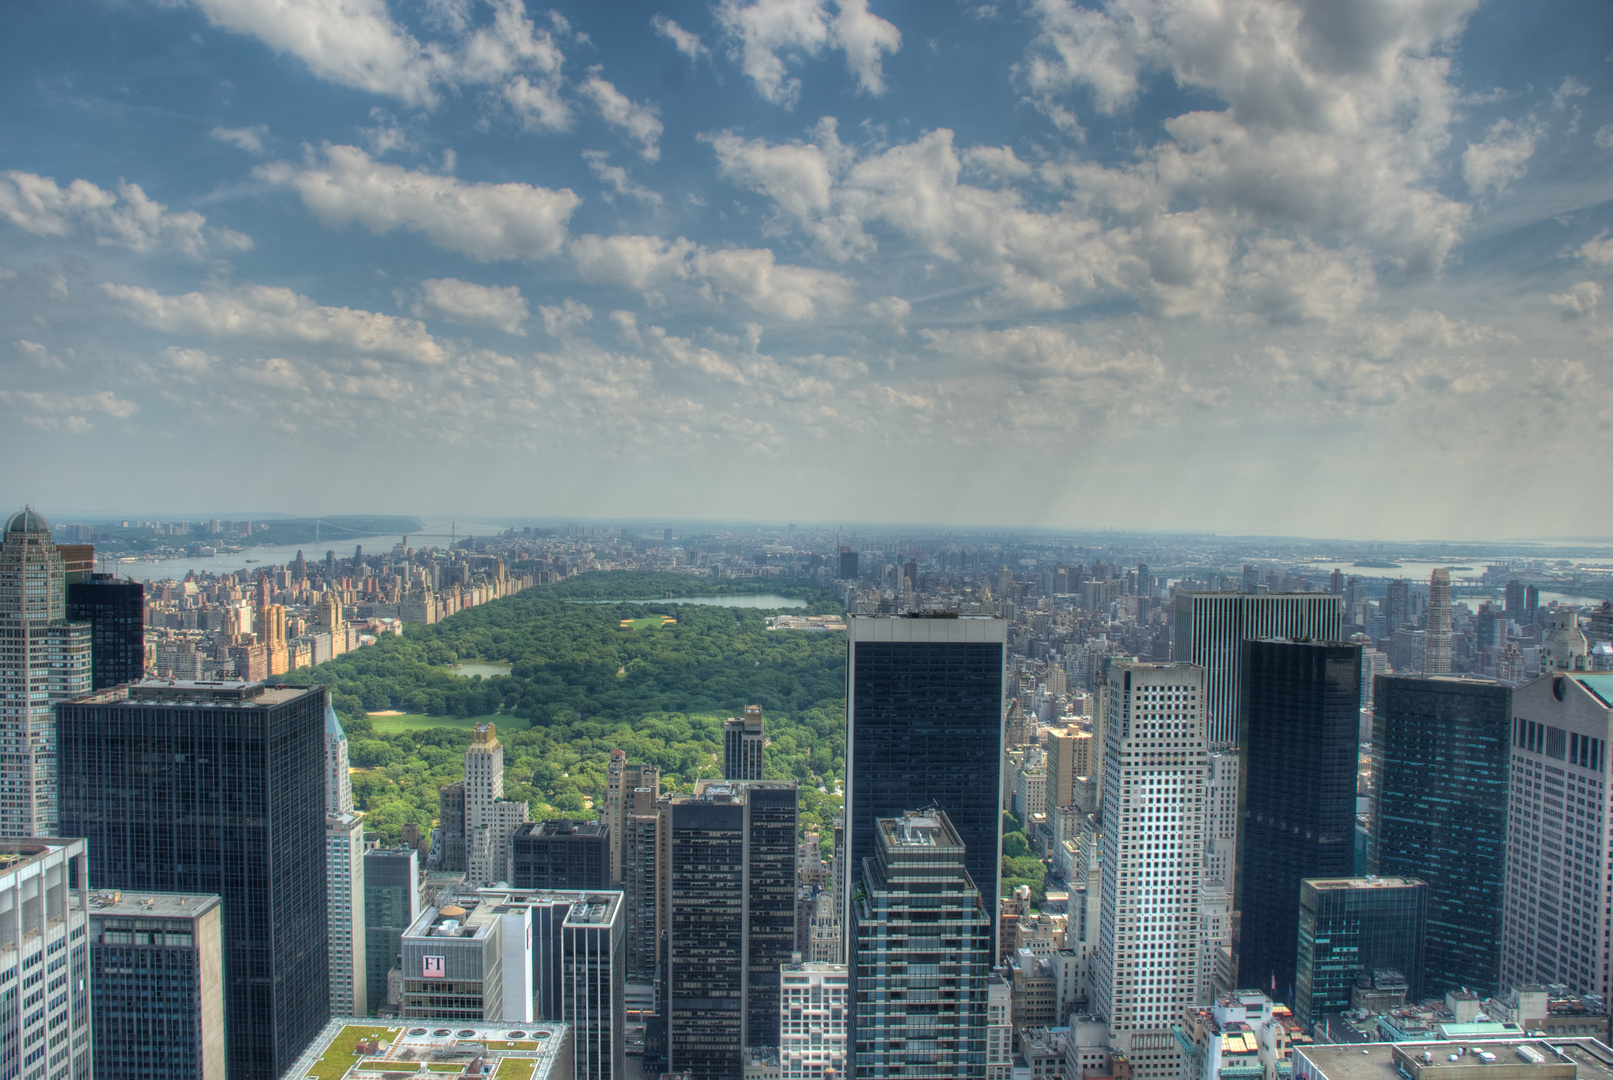 Top of the Rock - Central Park View